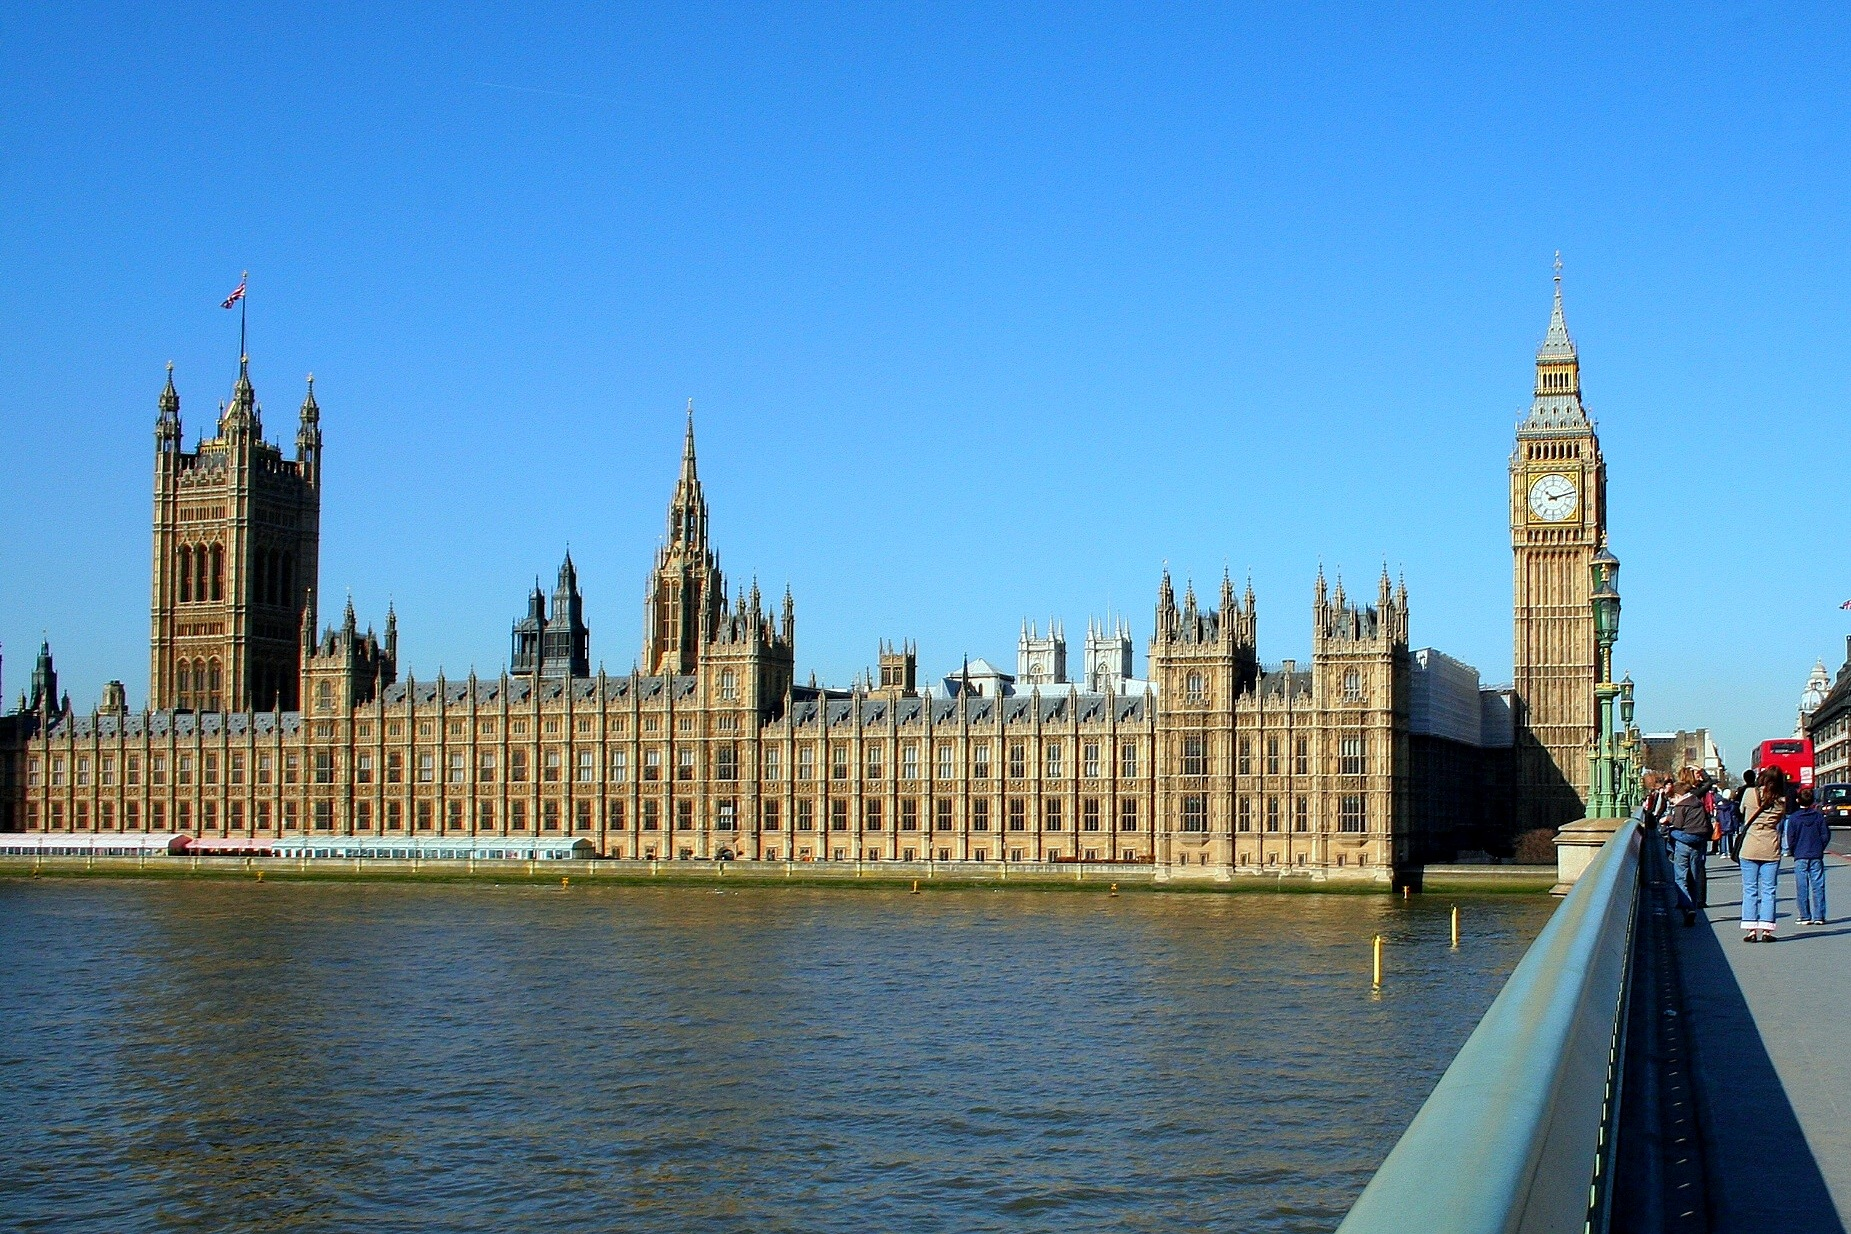 Houses of Parliament, London by katze